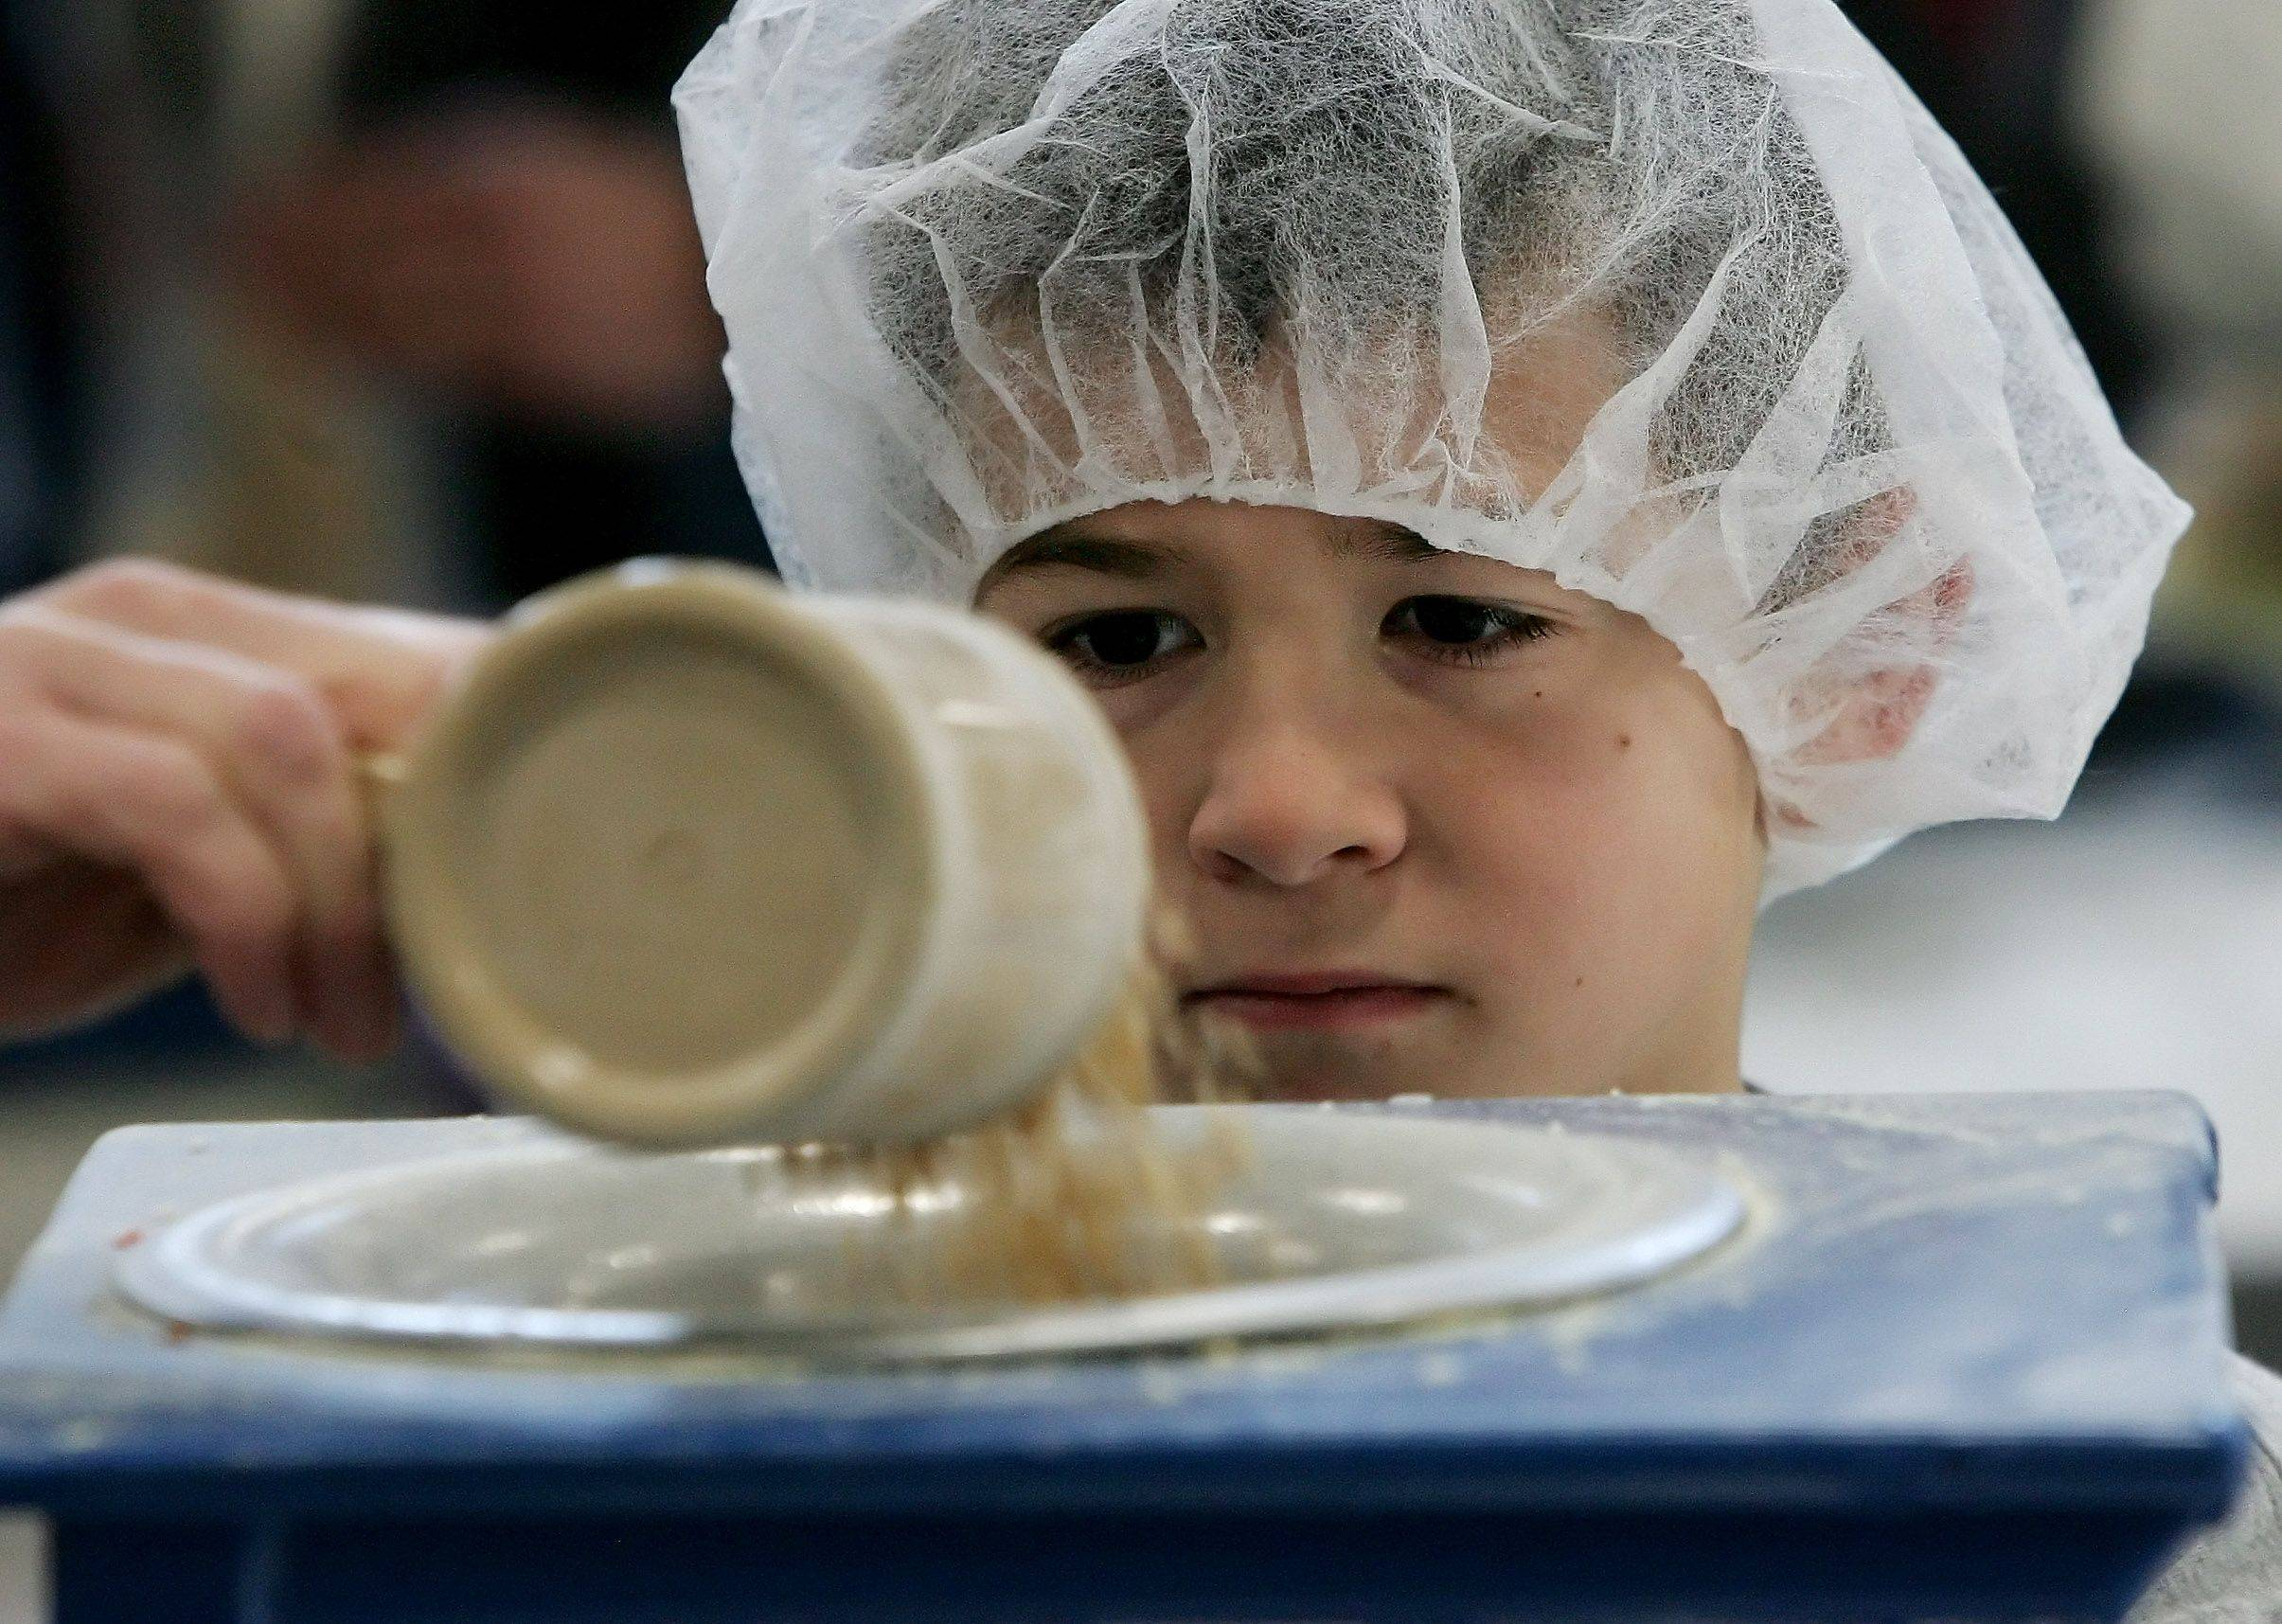 Aaron Ketchmark, 6, of Kouts, Indiana watches as rice is poured into a bag. Aaron was attending a birthday party for his cousin Cameron Tonkery of Hainesville who celebrated his eleventh birthday by having his party at the Feed My Starving Children event at the Lake County Fairgrounds. Party goers spent time packaging meals to be sent to starving children around the world.